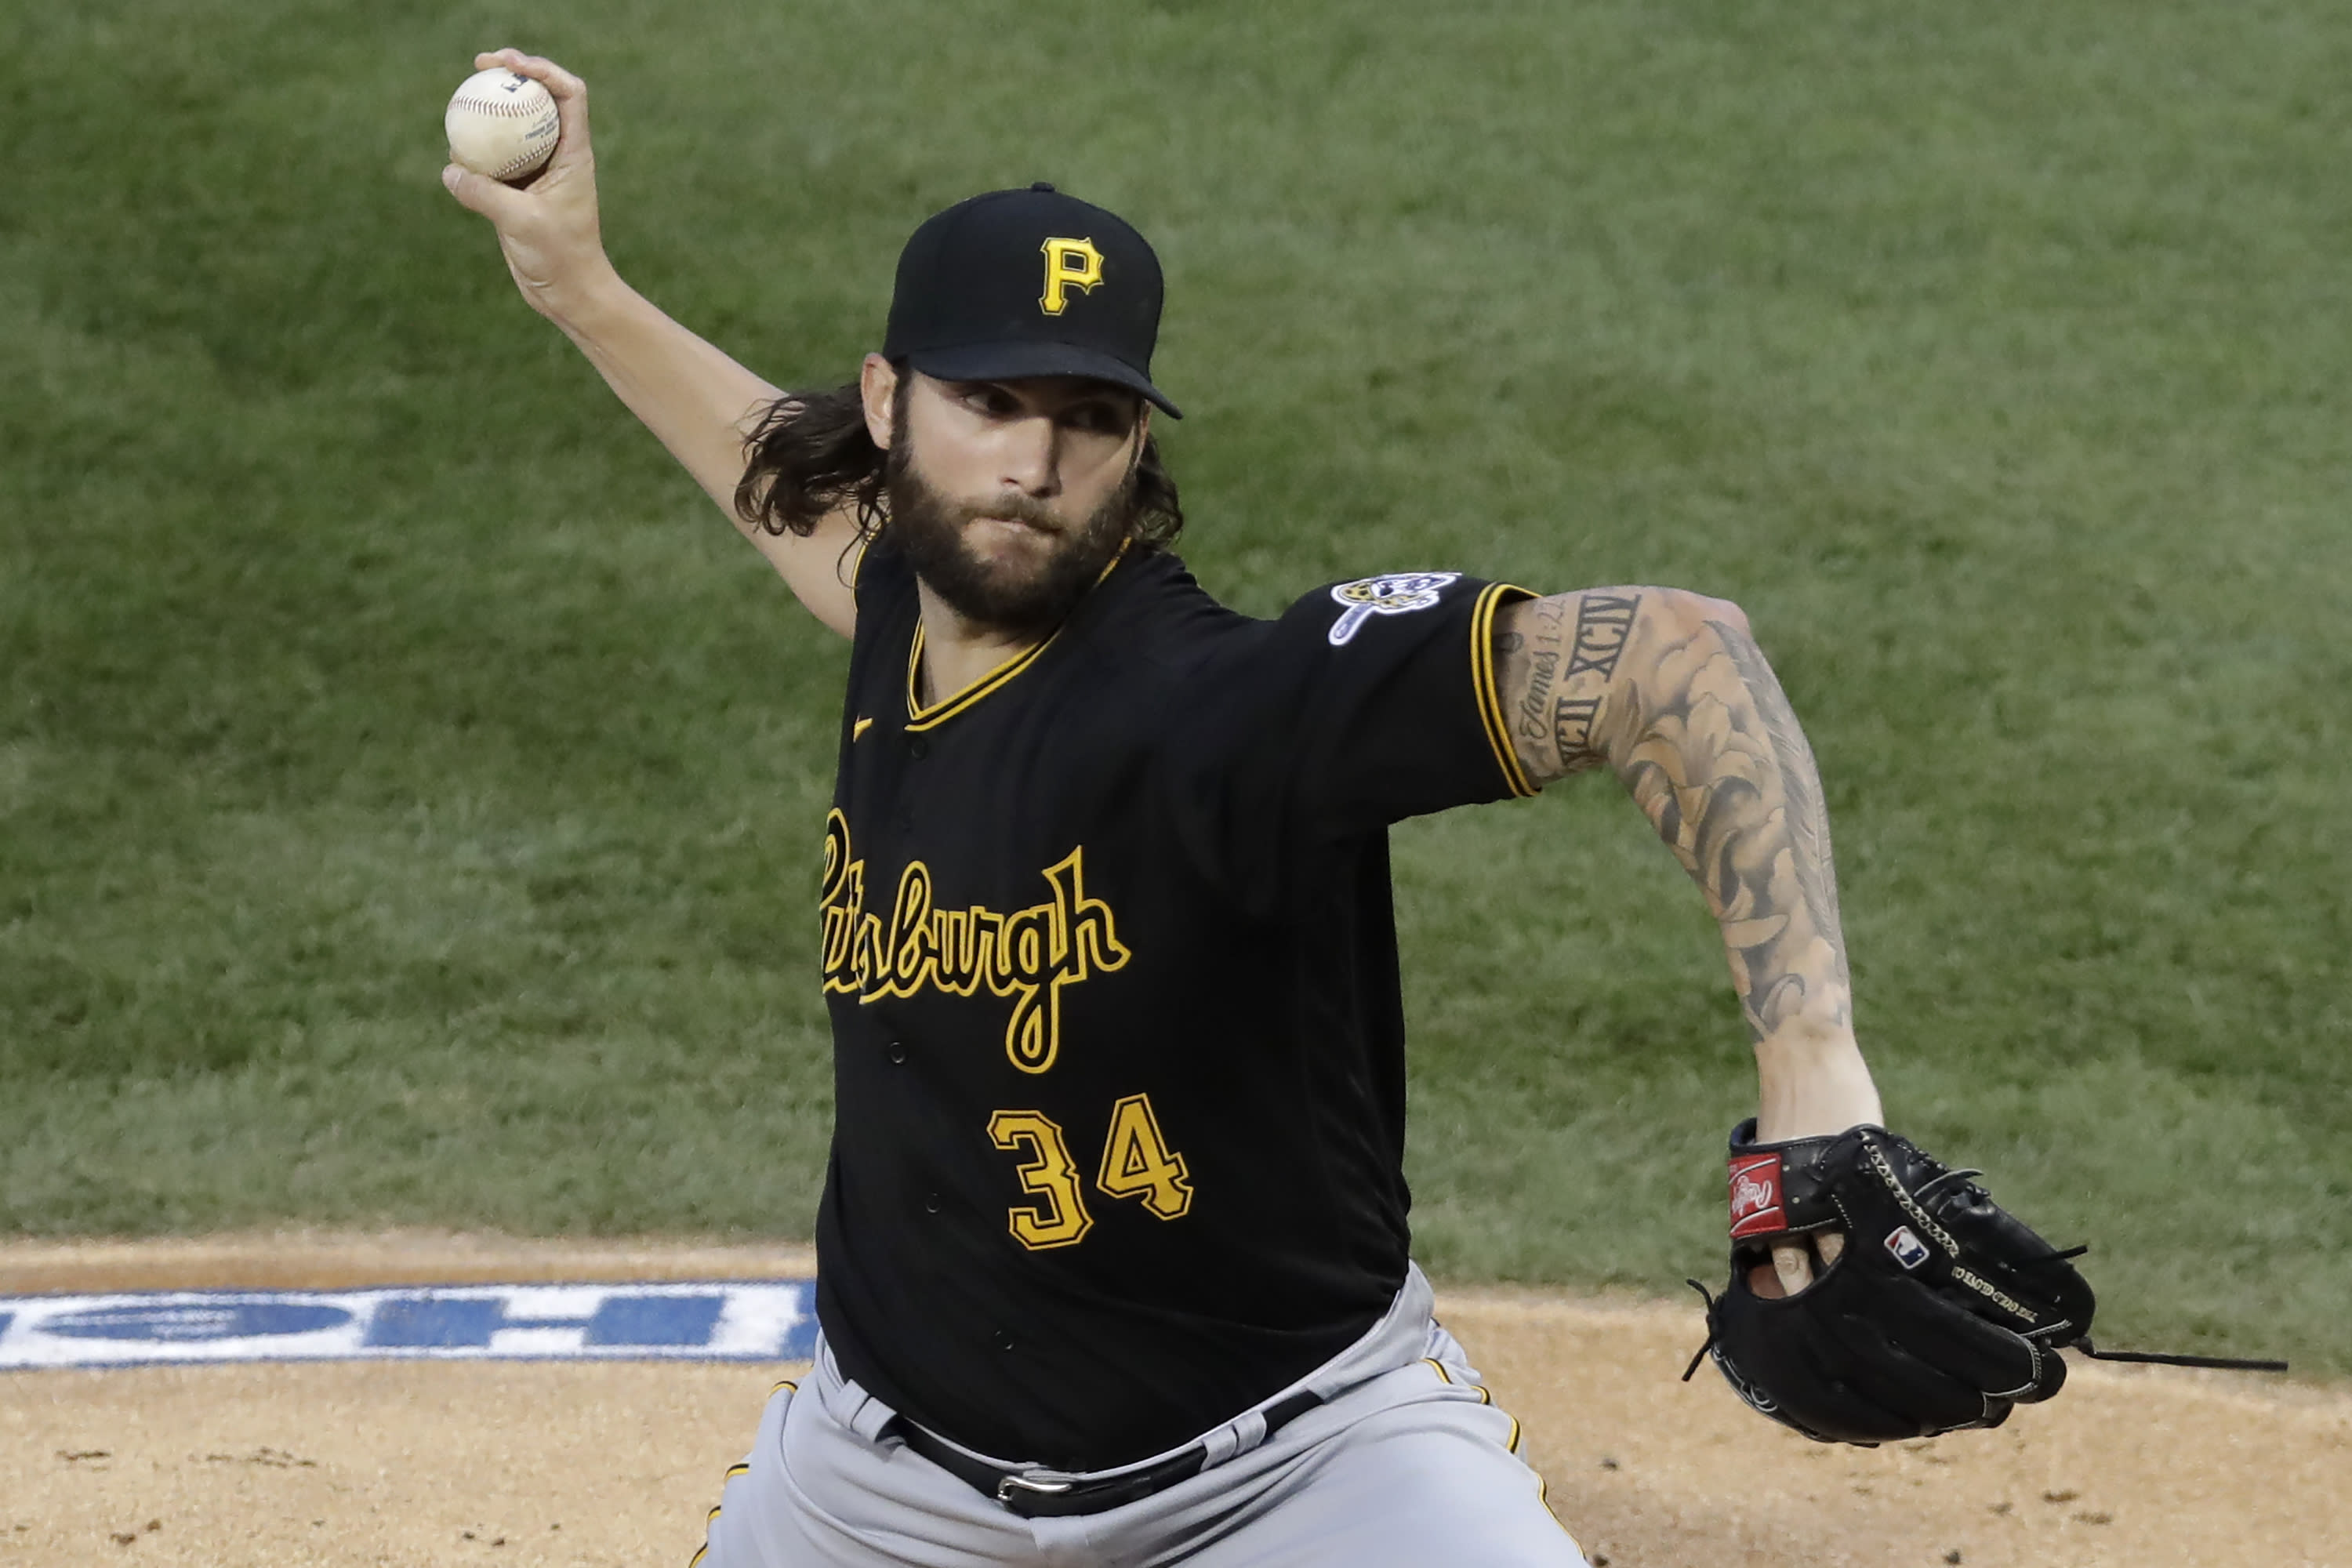 Pittsburgh Pirates starting pitcher Trevor Williams throws against the Chicago Cubs during the first inning of a baseball game in Chicago, Friday, July 31, 2020. (AP Photo/Nam Y. Huh)